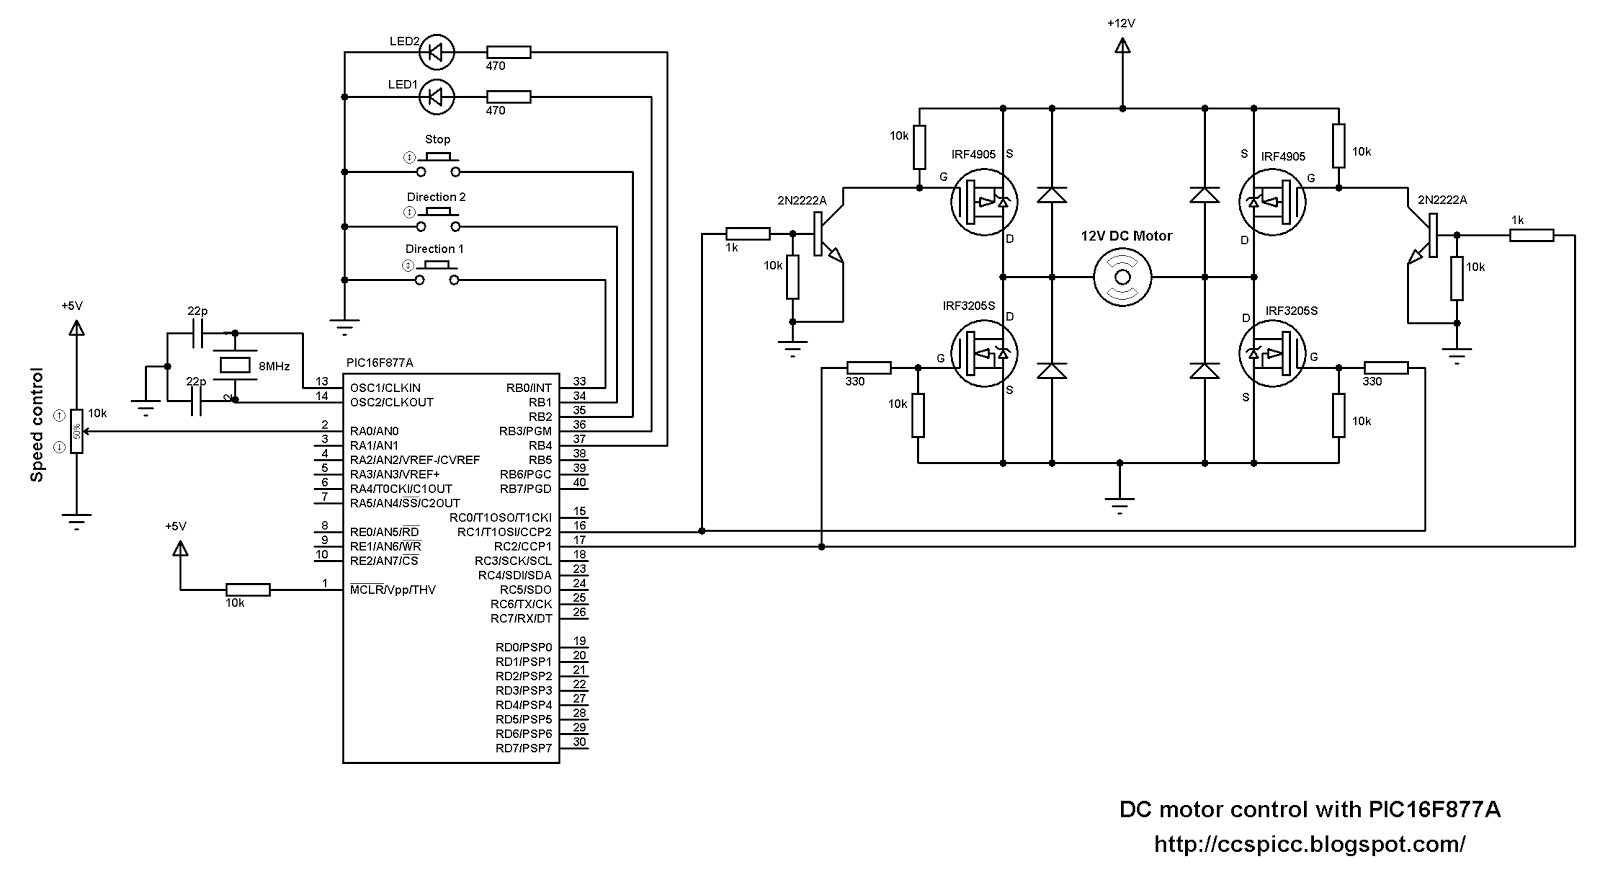 DC motor speed and direction control with PIC16F877A and H-bridge